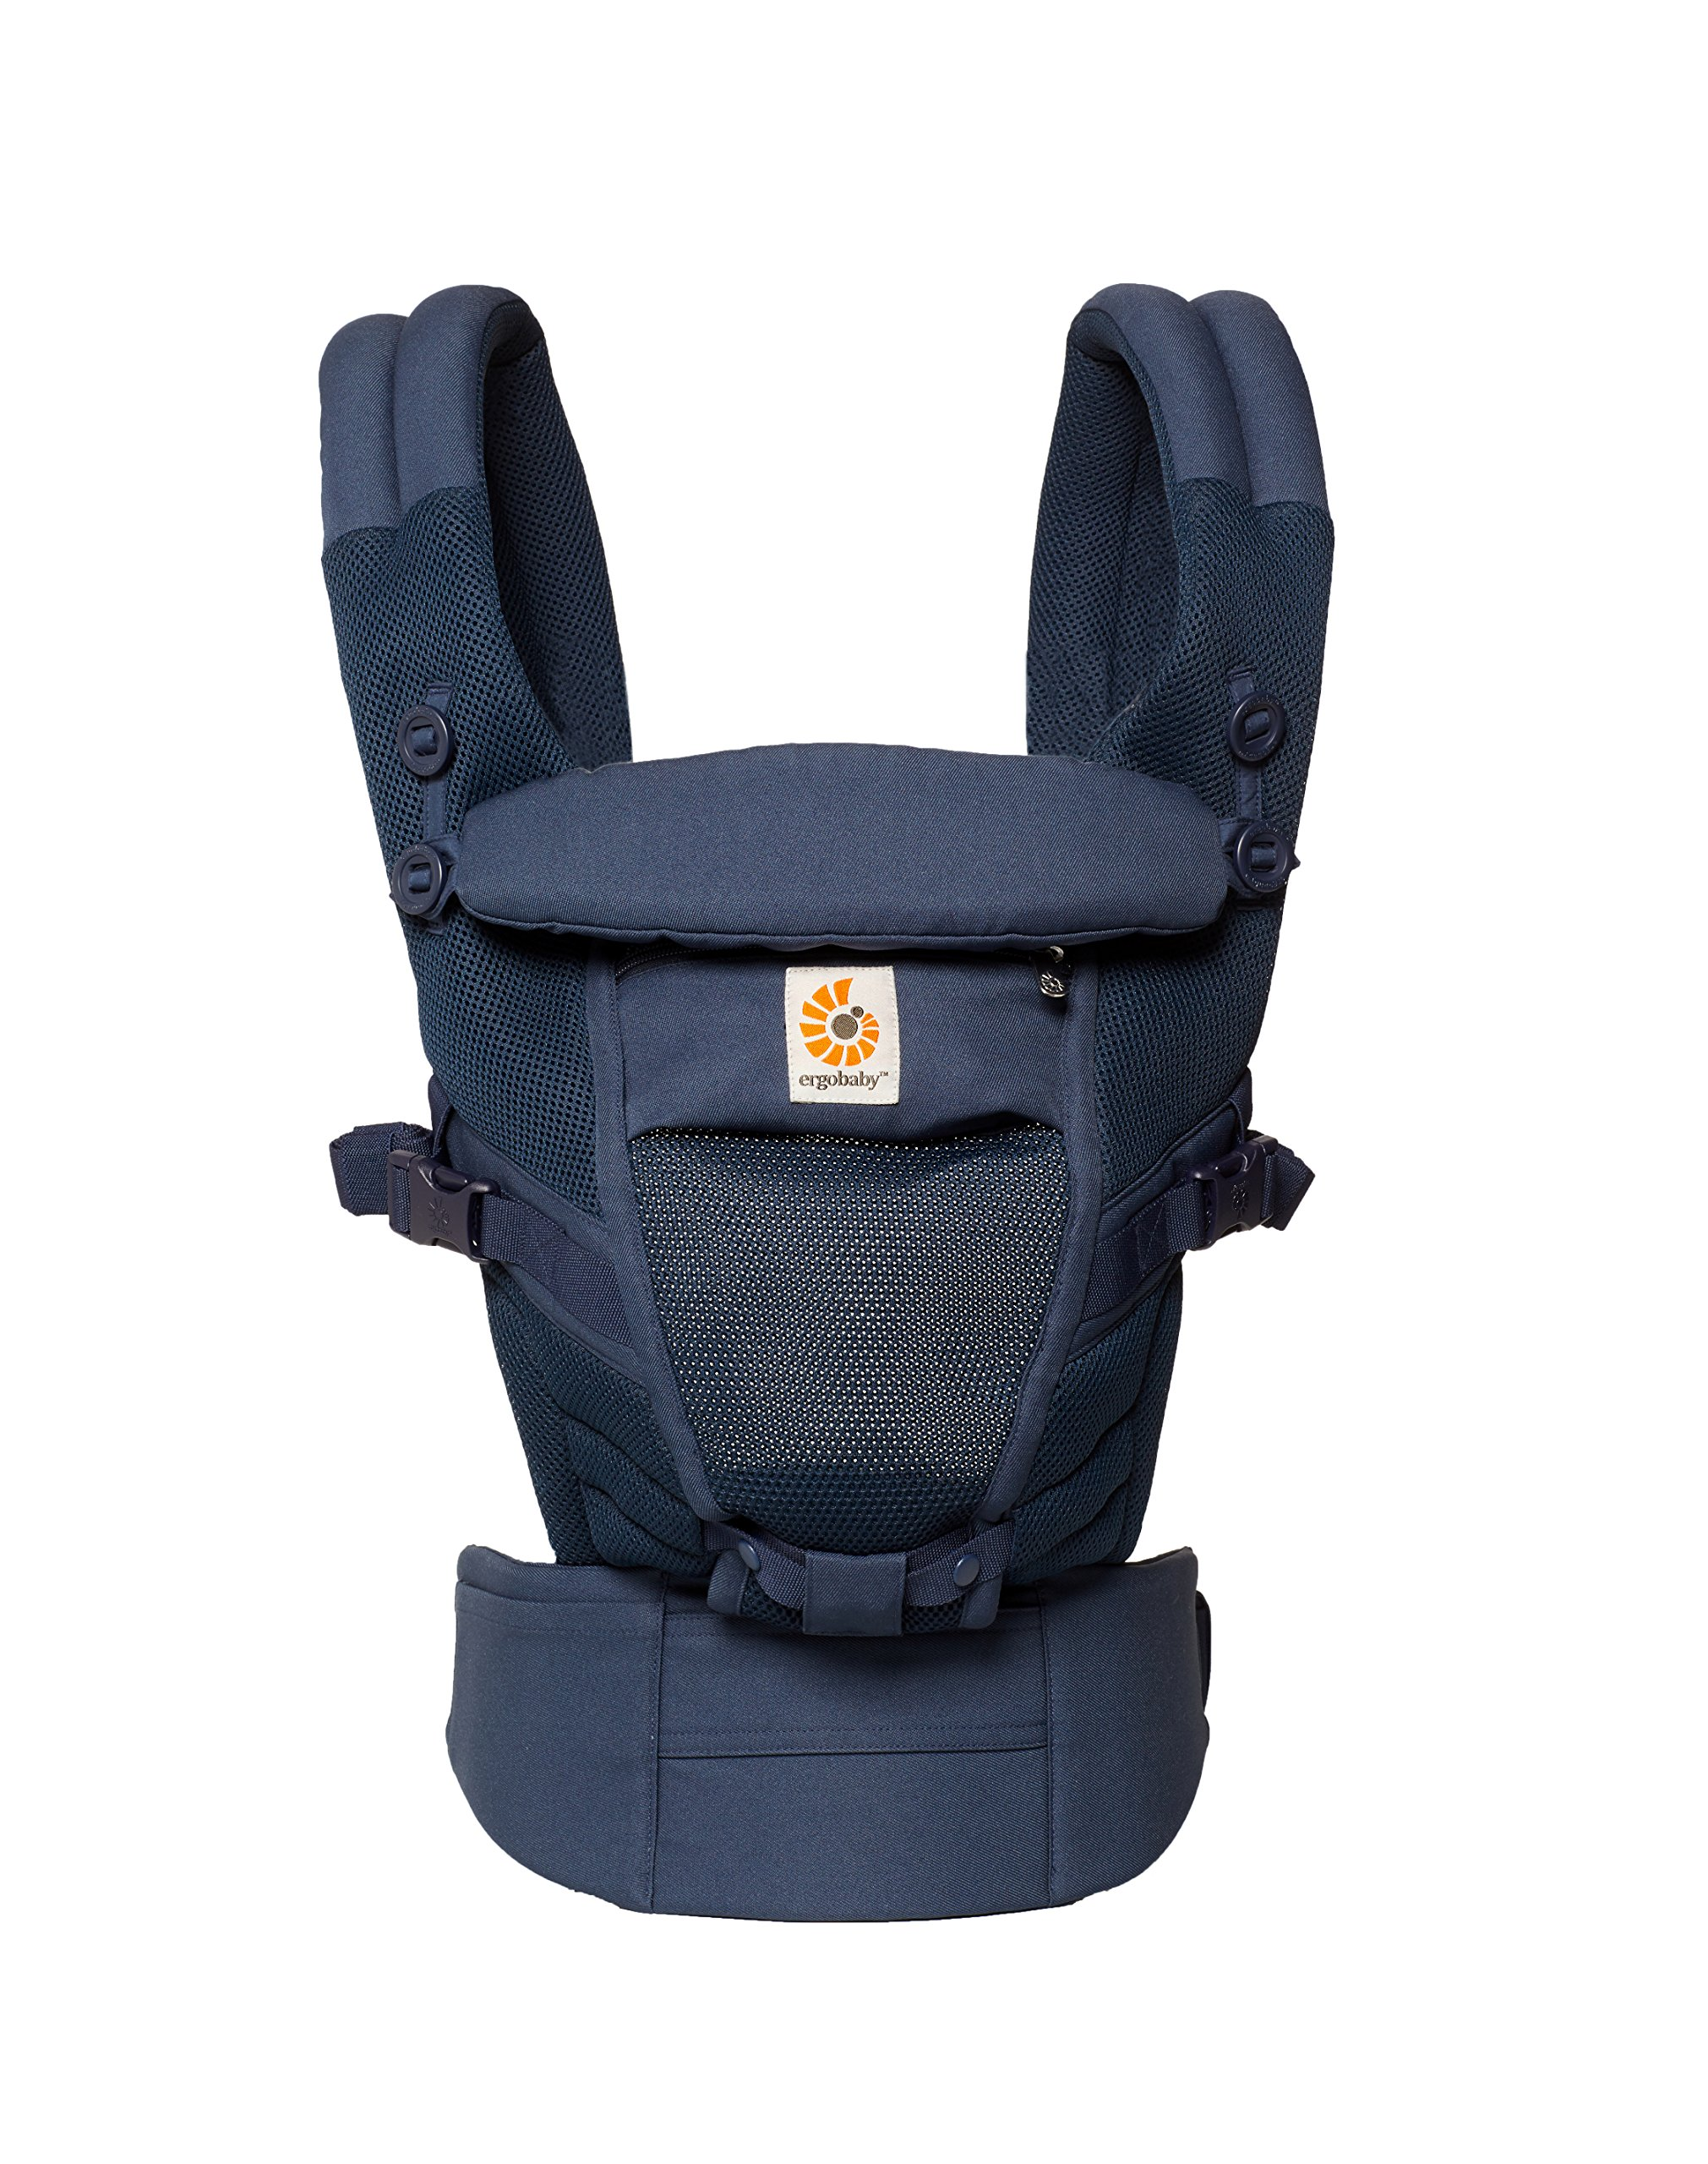 Ergobaby Baby Carrier for Newborn to Toddler up to 20kg, Adapt 3-Position Cool Air Mesh, Deep Blue Ergobaby Ergonomic bucket seat gradually adjusts to a growing baby from newborn to toddler (3.2 -20kg) No infant insert required 3 ergonomic carry positions: front-inward, hip and back 1